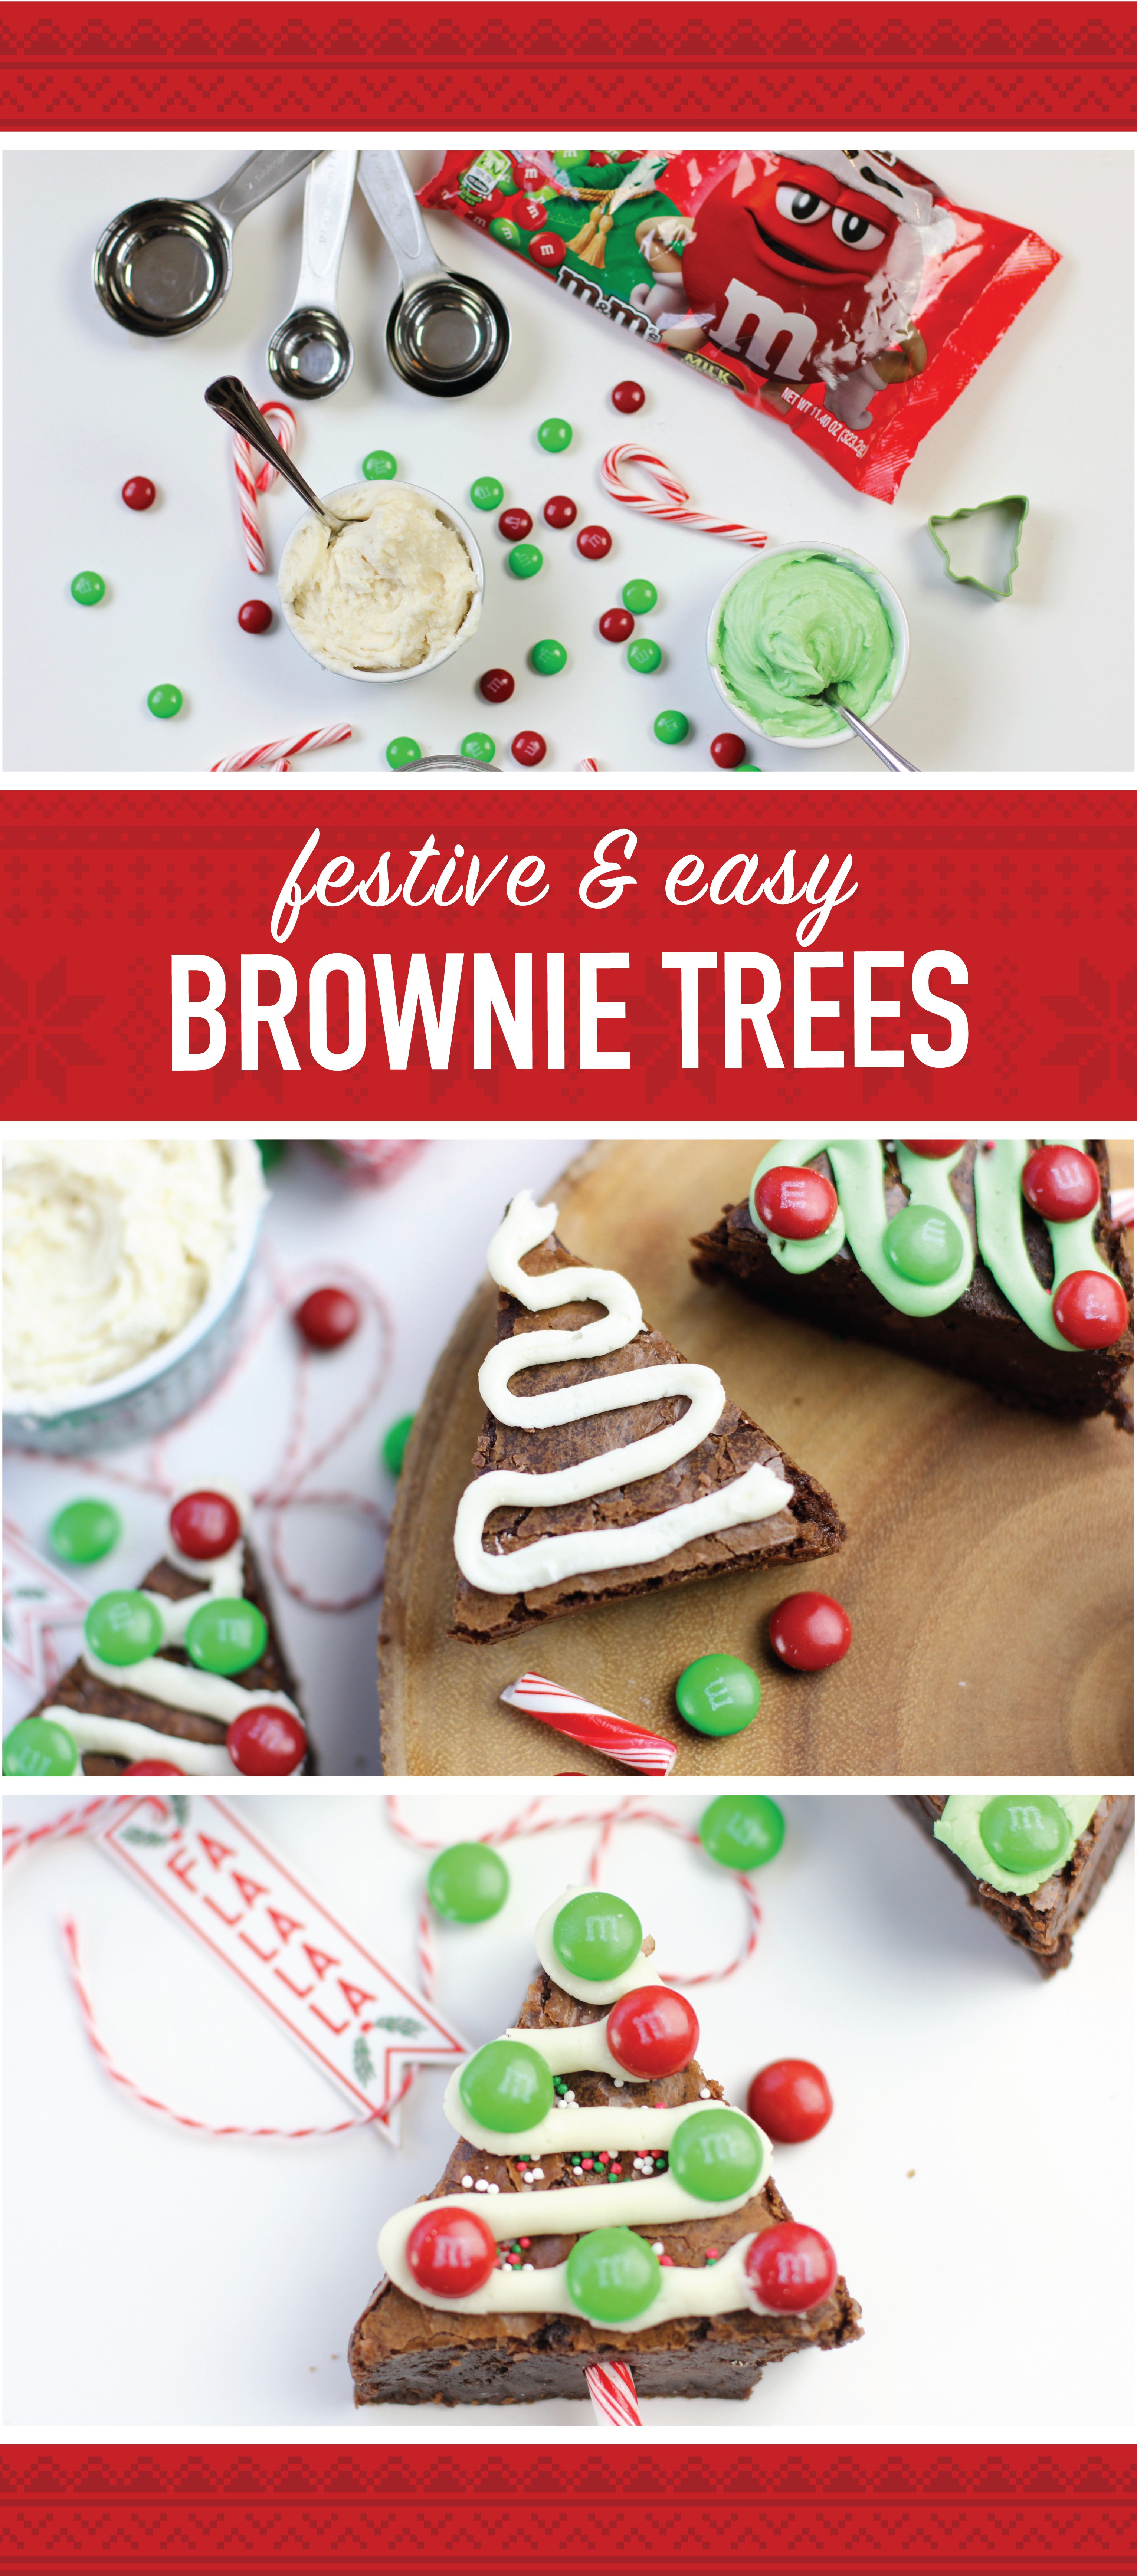 check out this recipe for mms brownie christmas trees using mms milk chocolate ugly sweater packs your favorite - Fred Meyer Christmas Trees